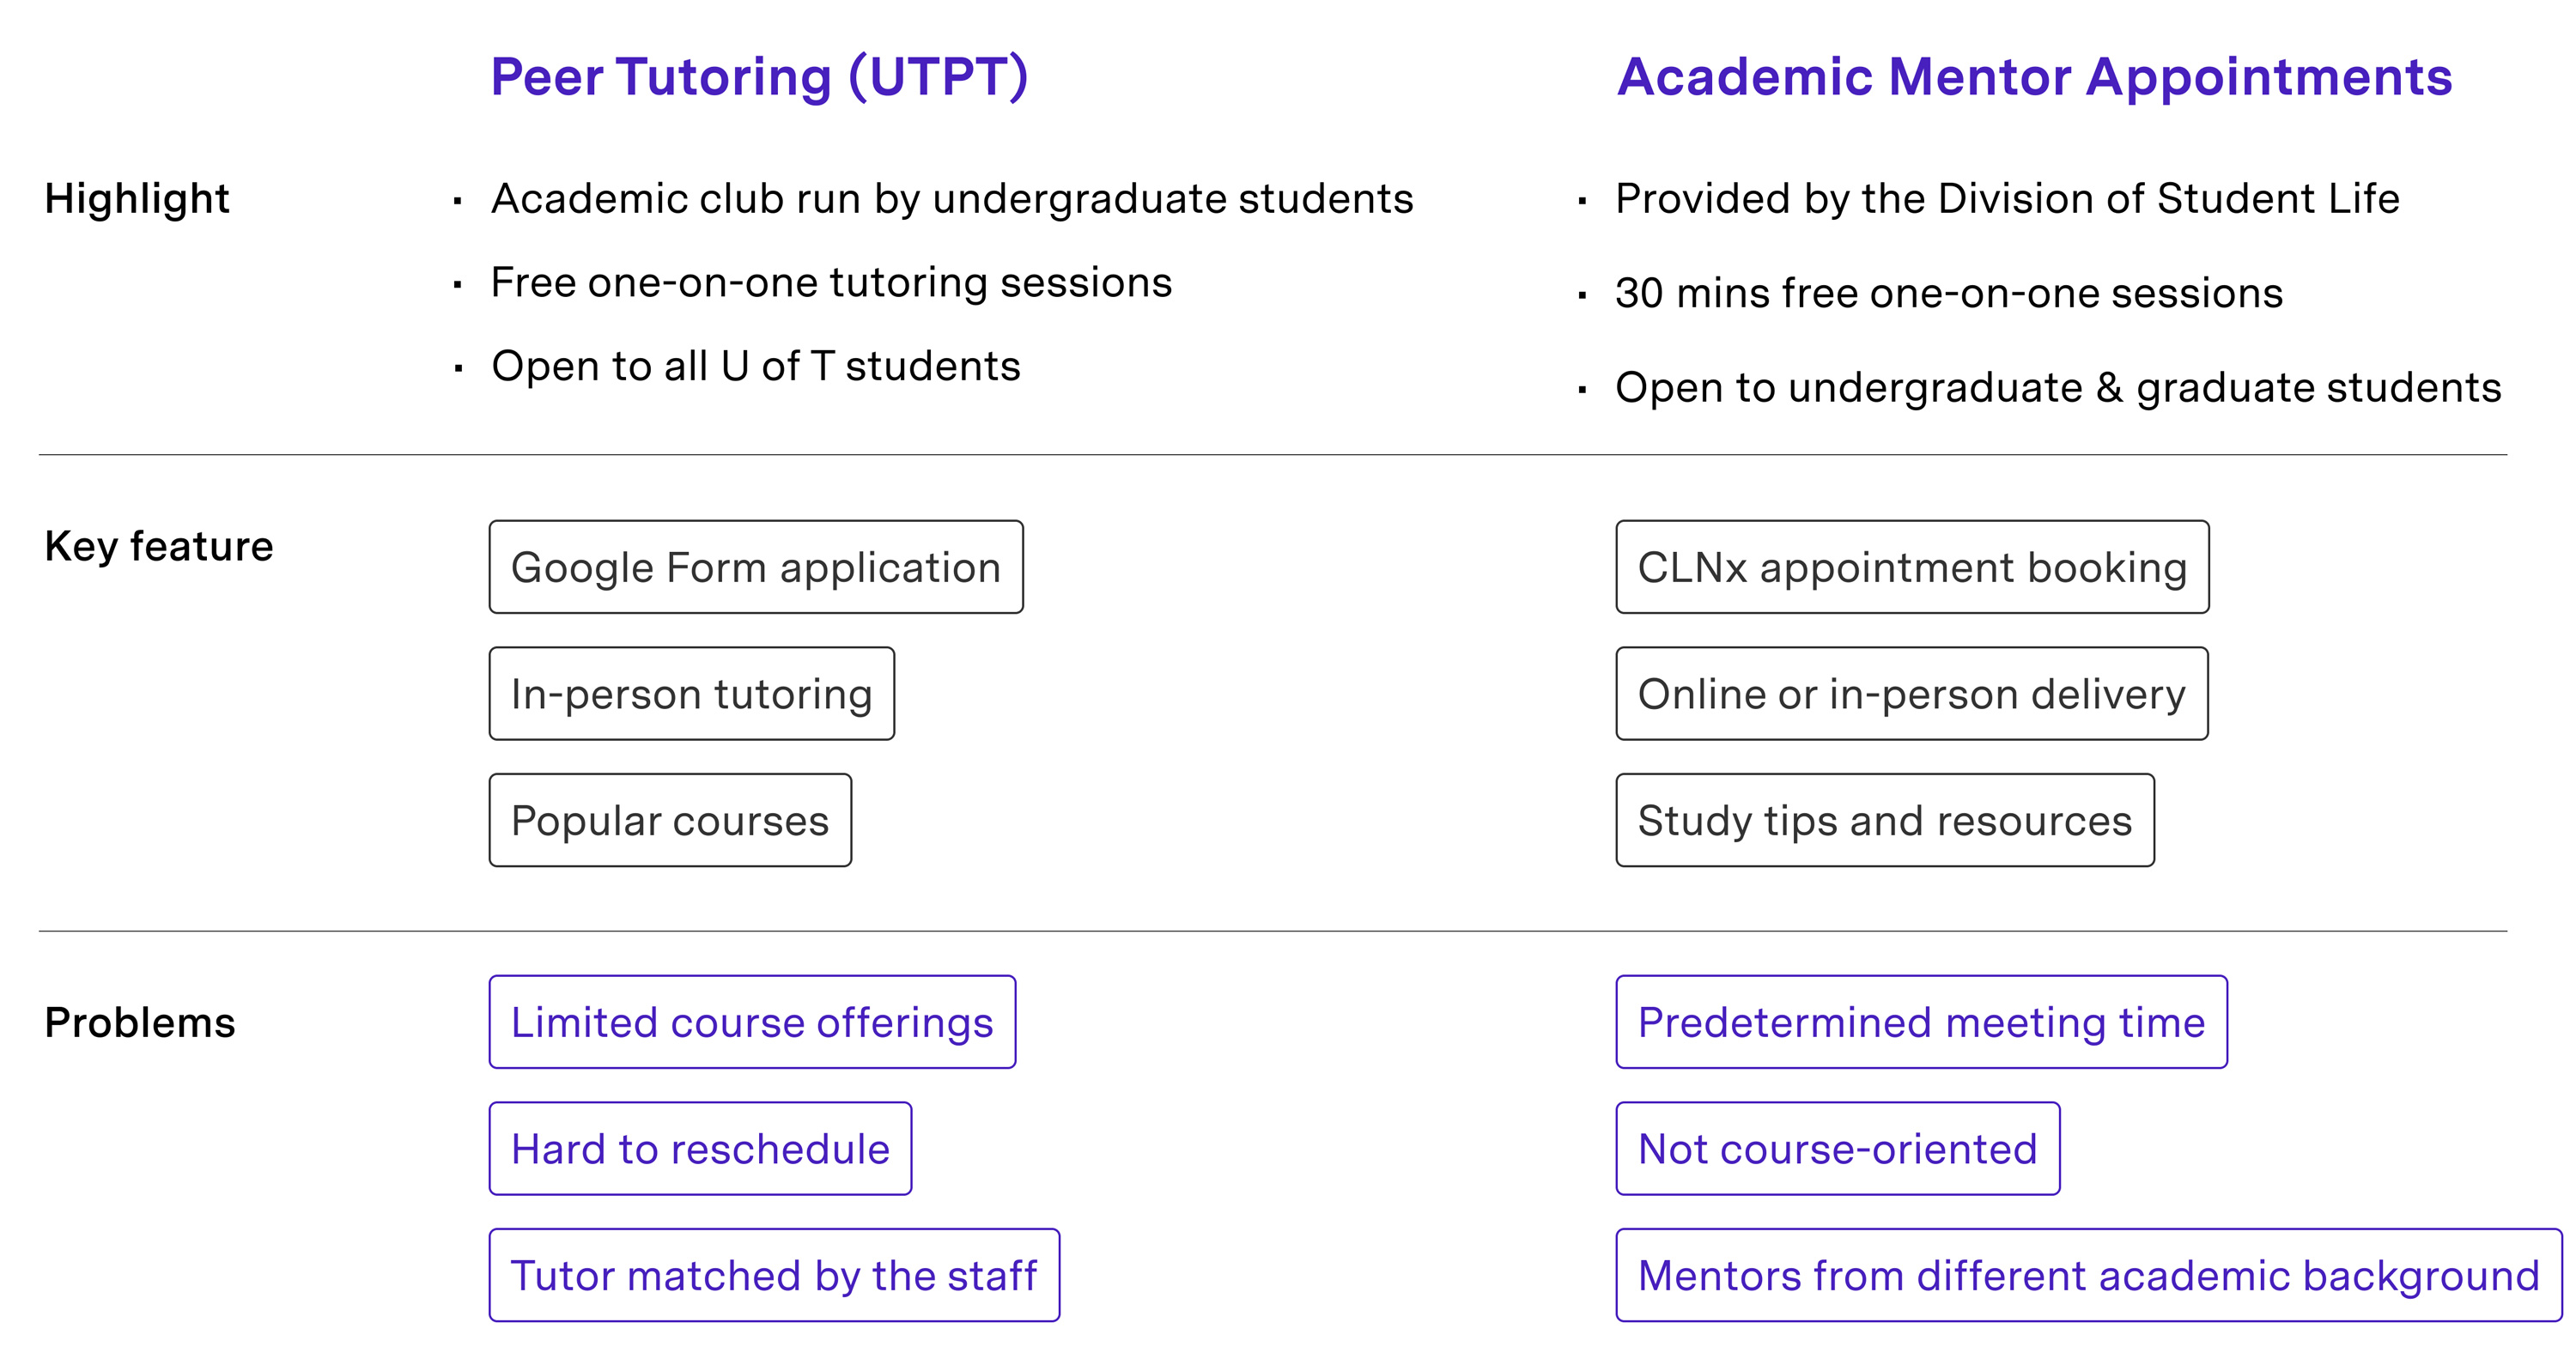 Peer tutoring at U of T competitive research